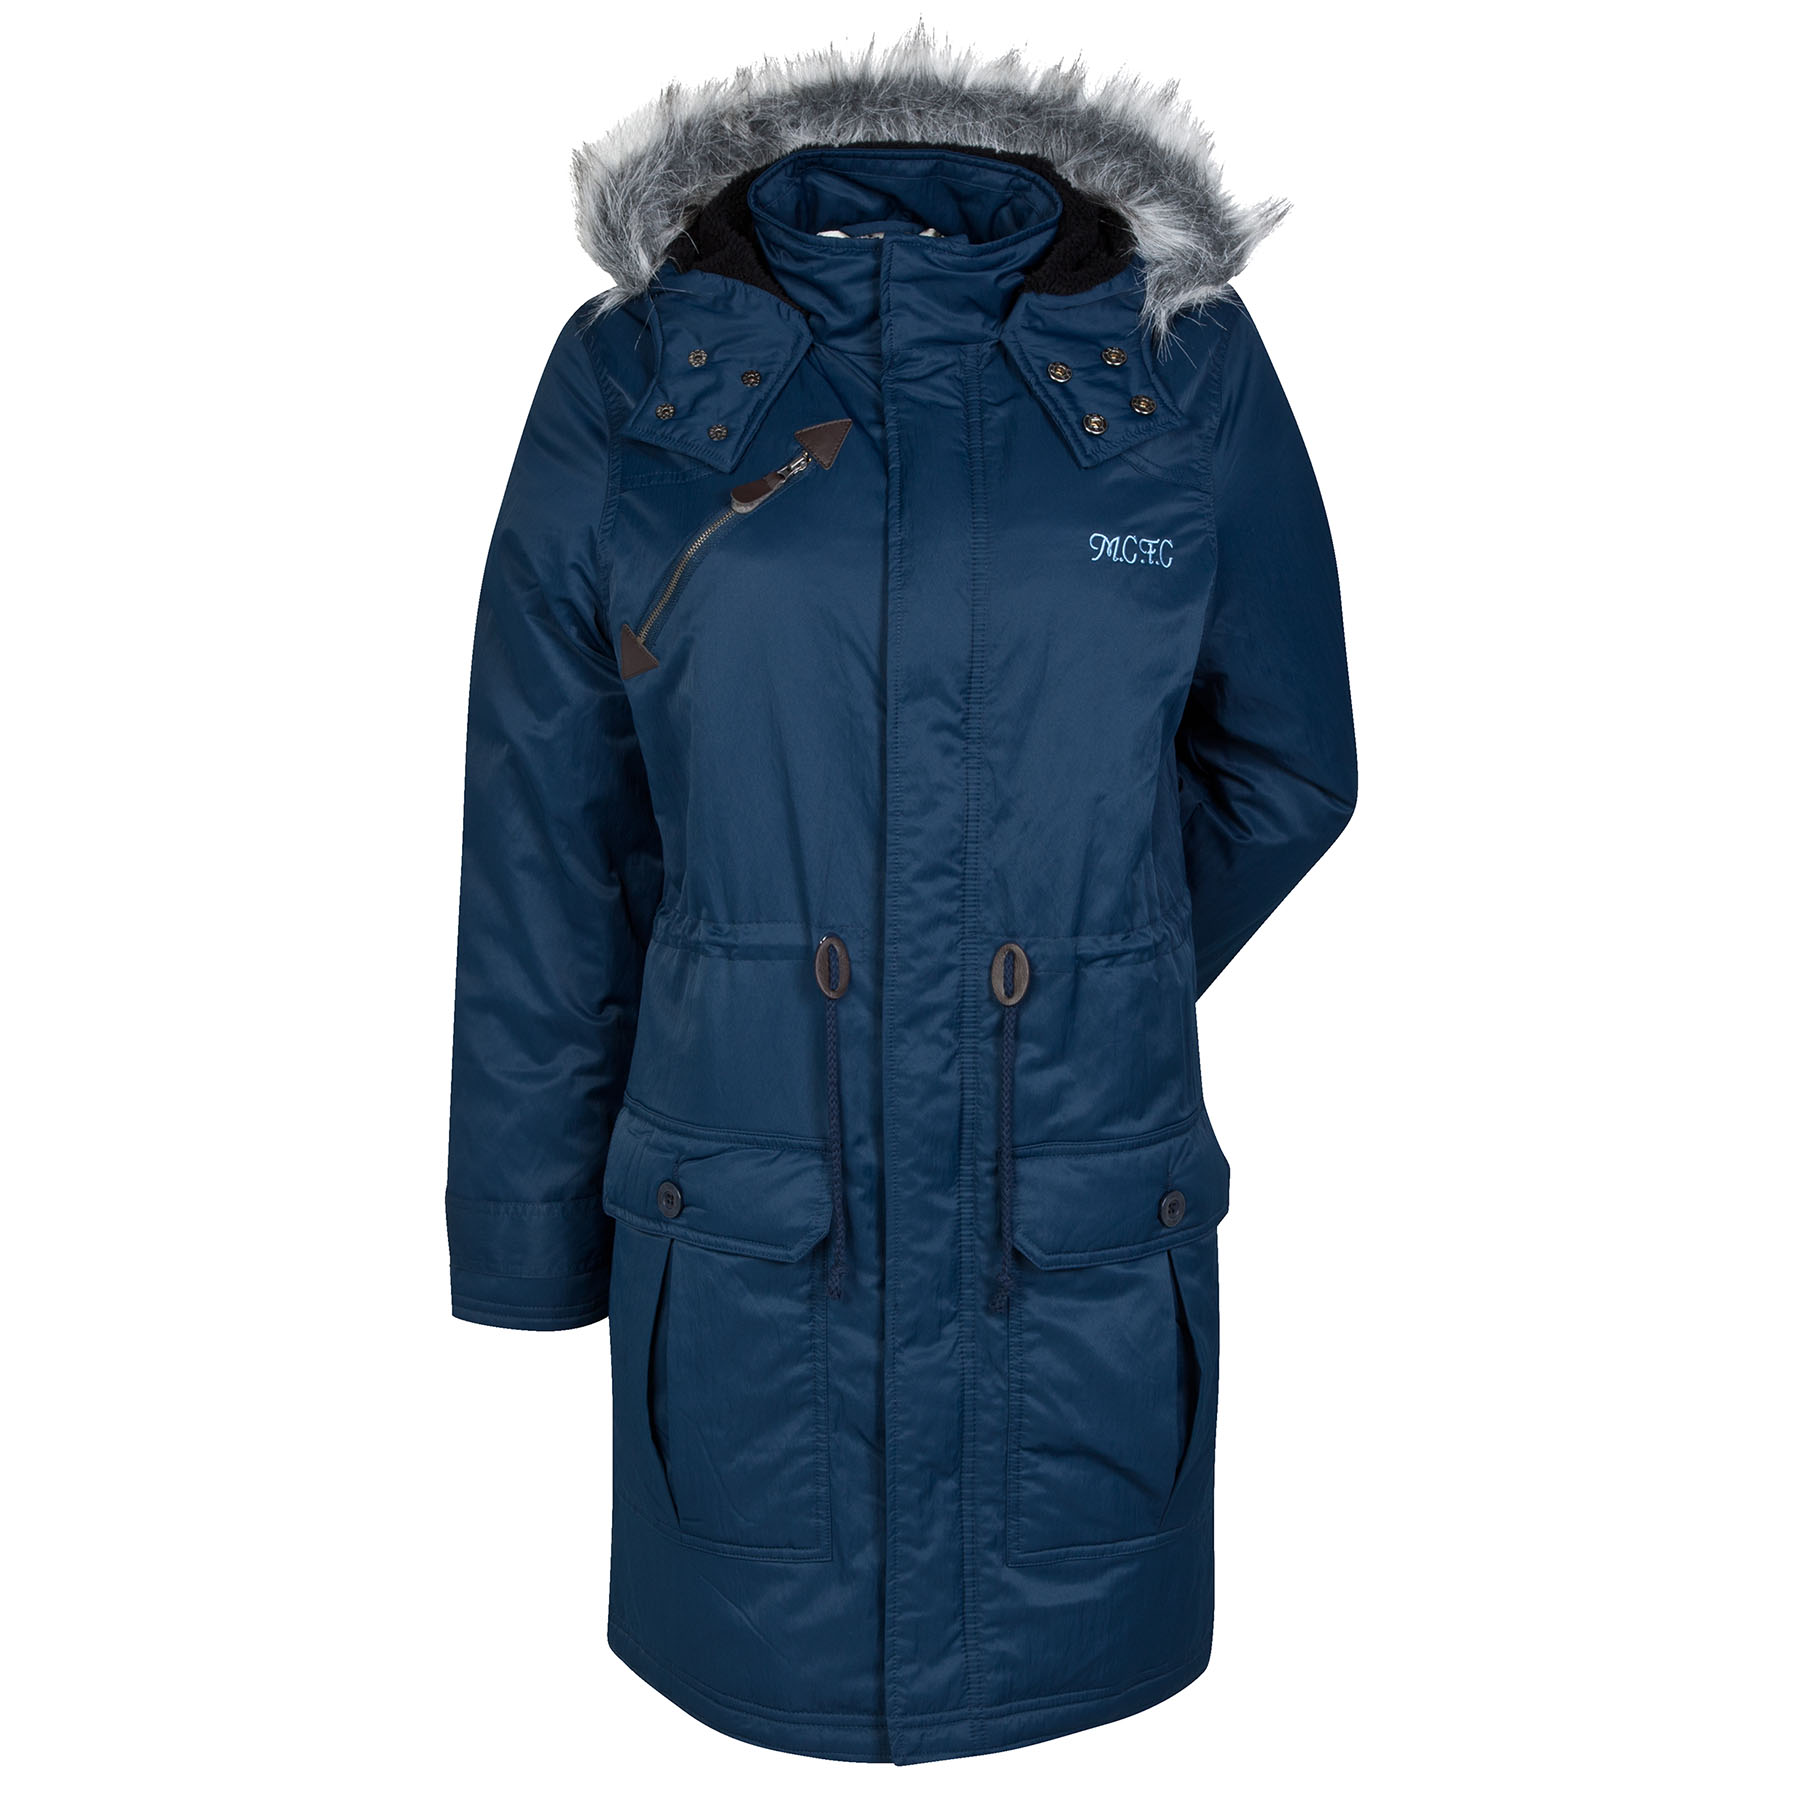 Manchester City Parka Coat - Navy - Womens